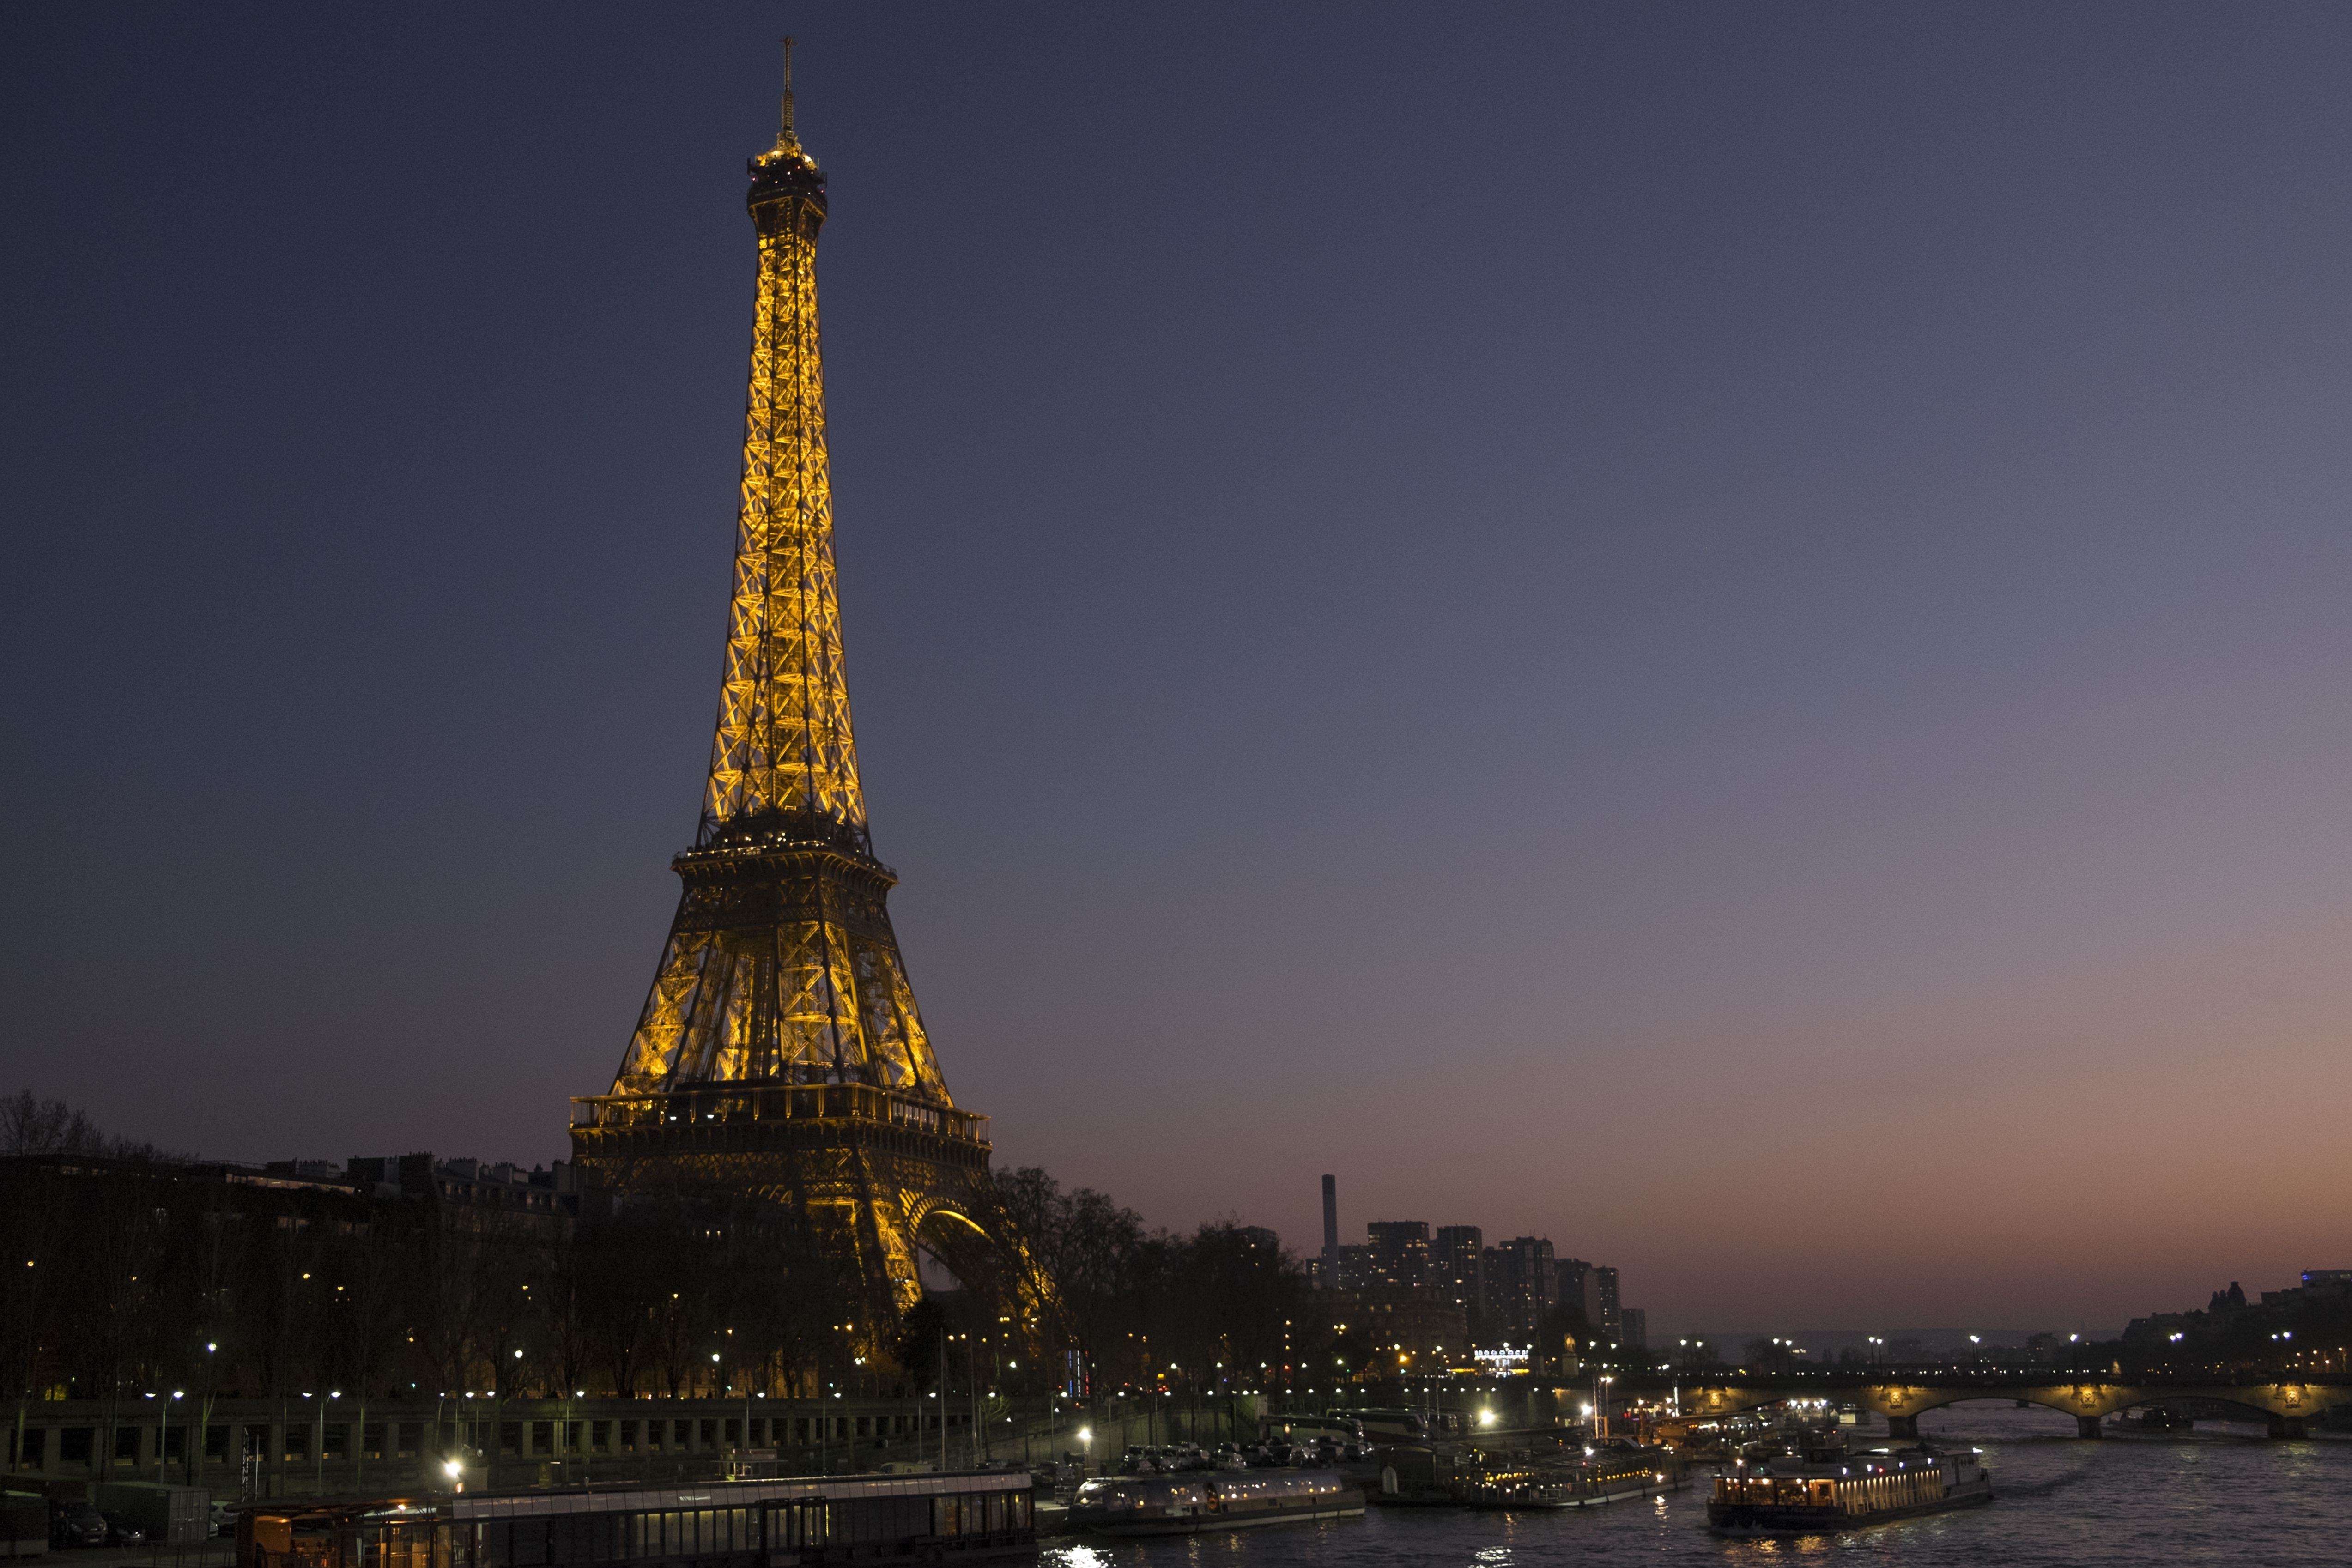 The Eiffel Tower and the River Seine on a Parisian evening